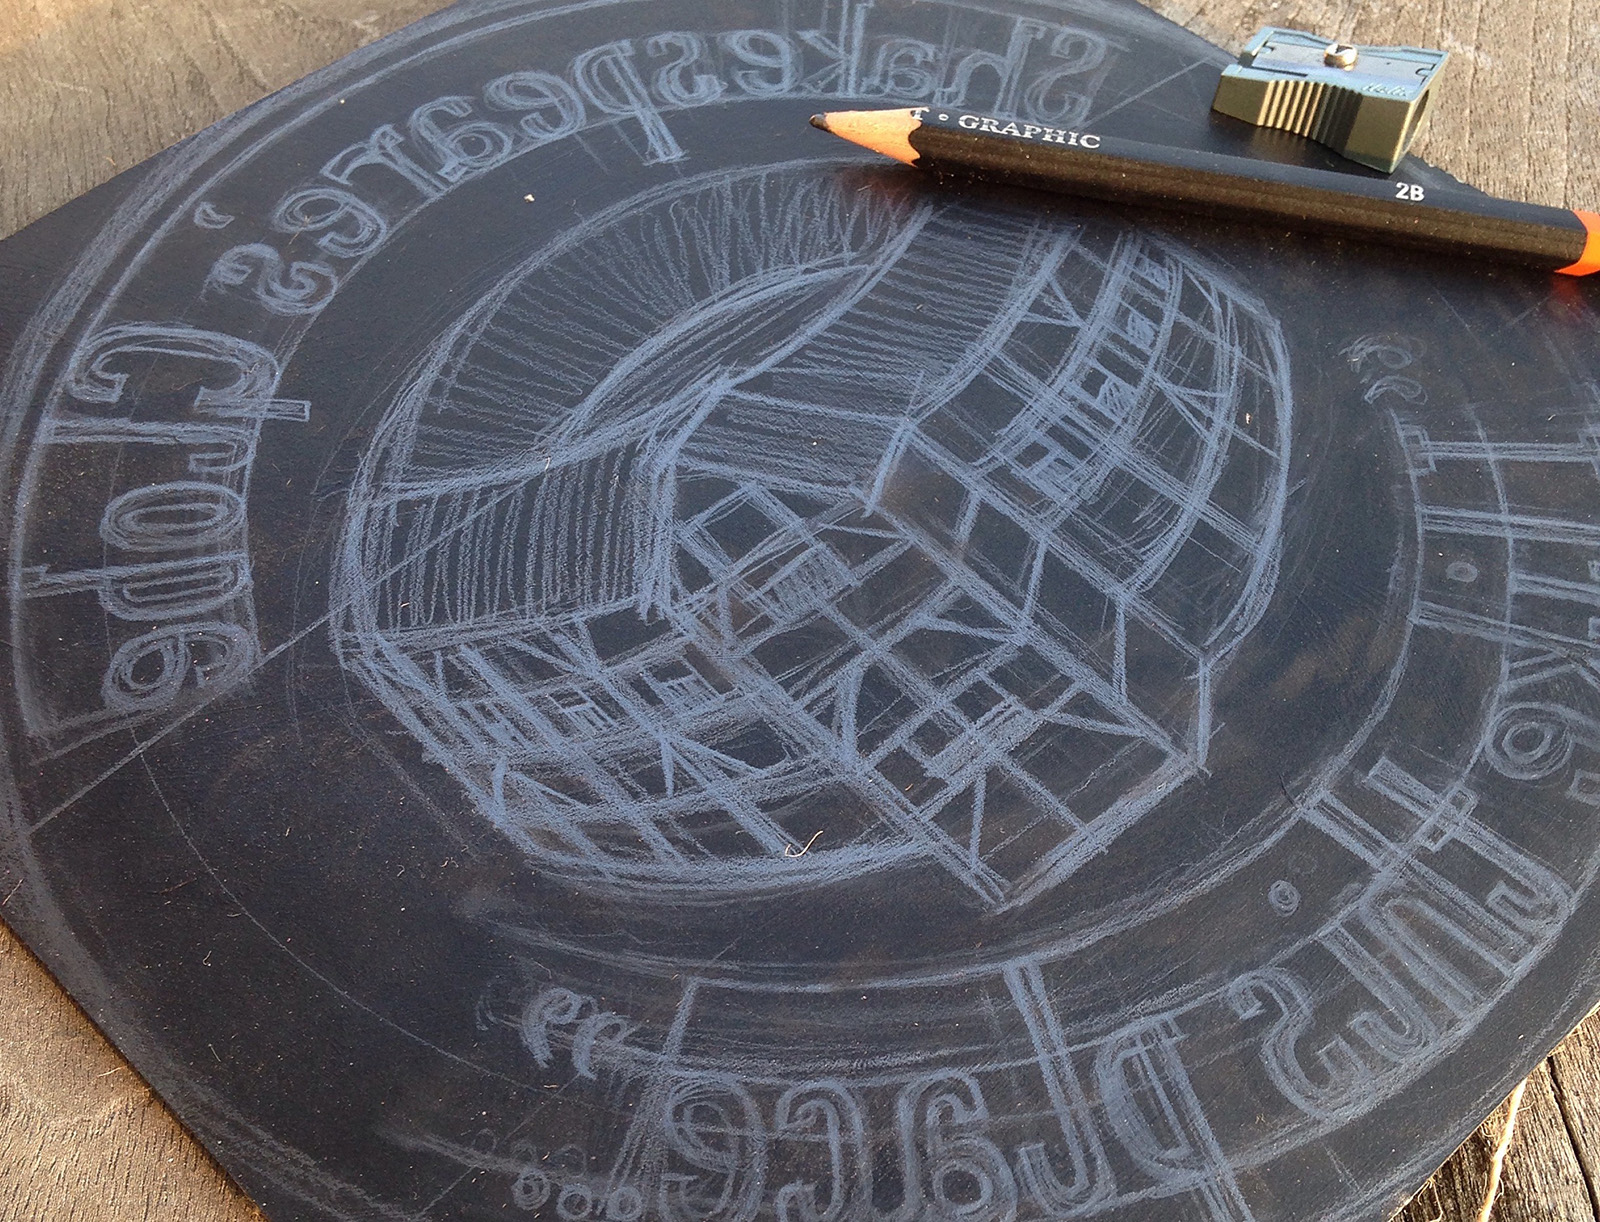 A drawing of the Globe Theatre on a block of lino, the illustration reversed.